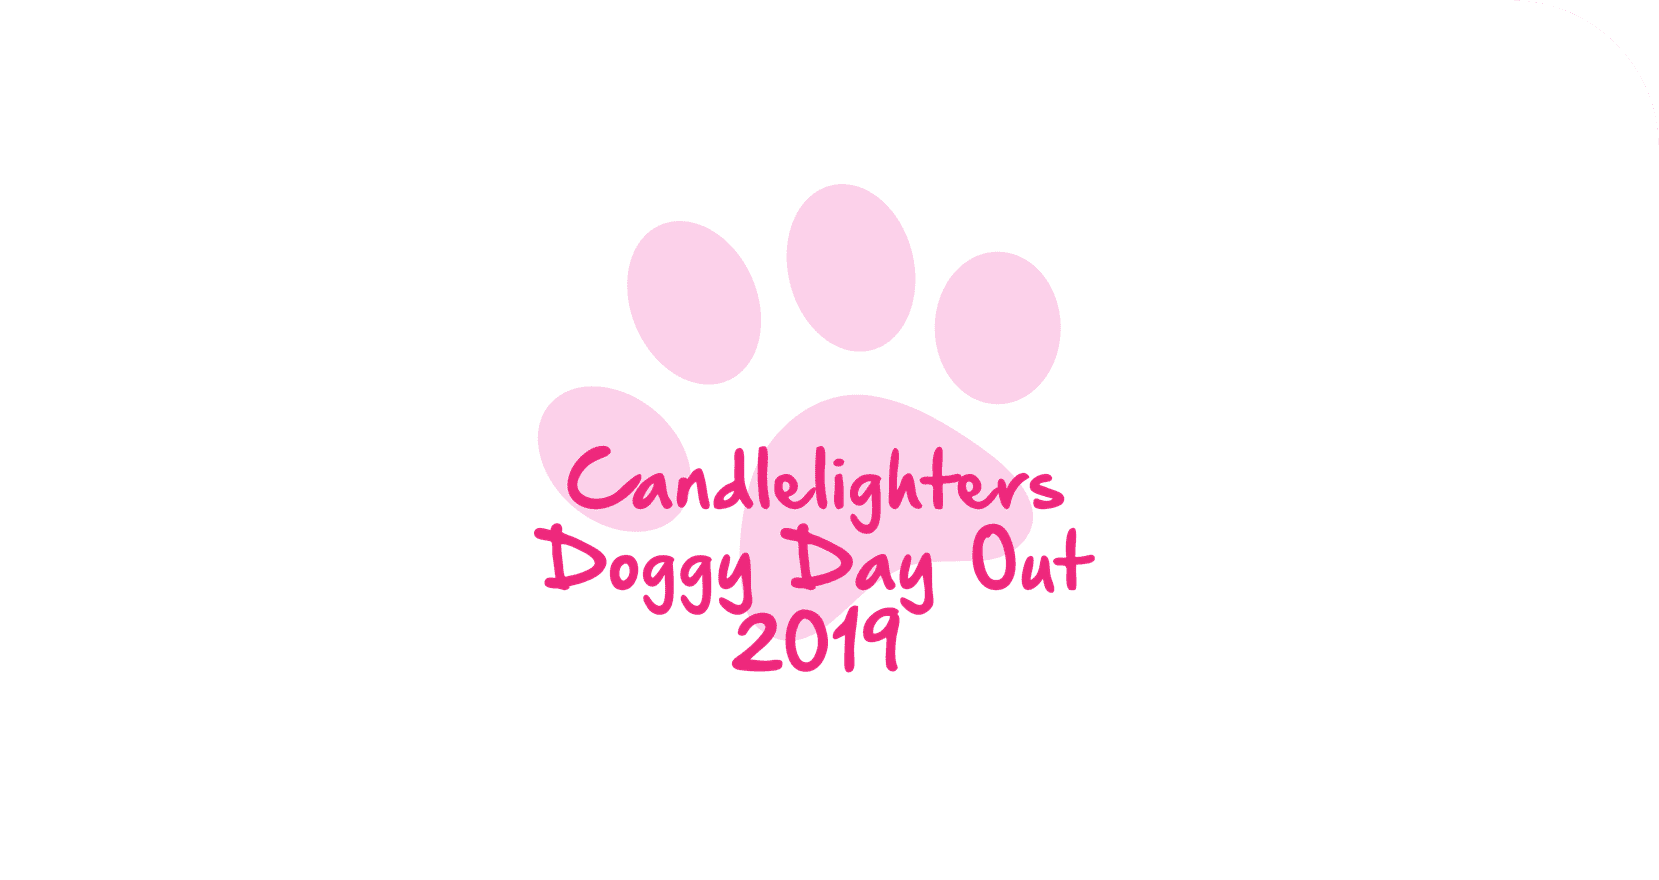 Doggy Day Out 2019!